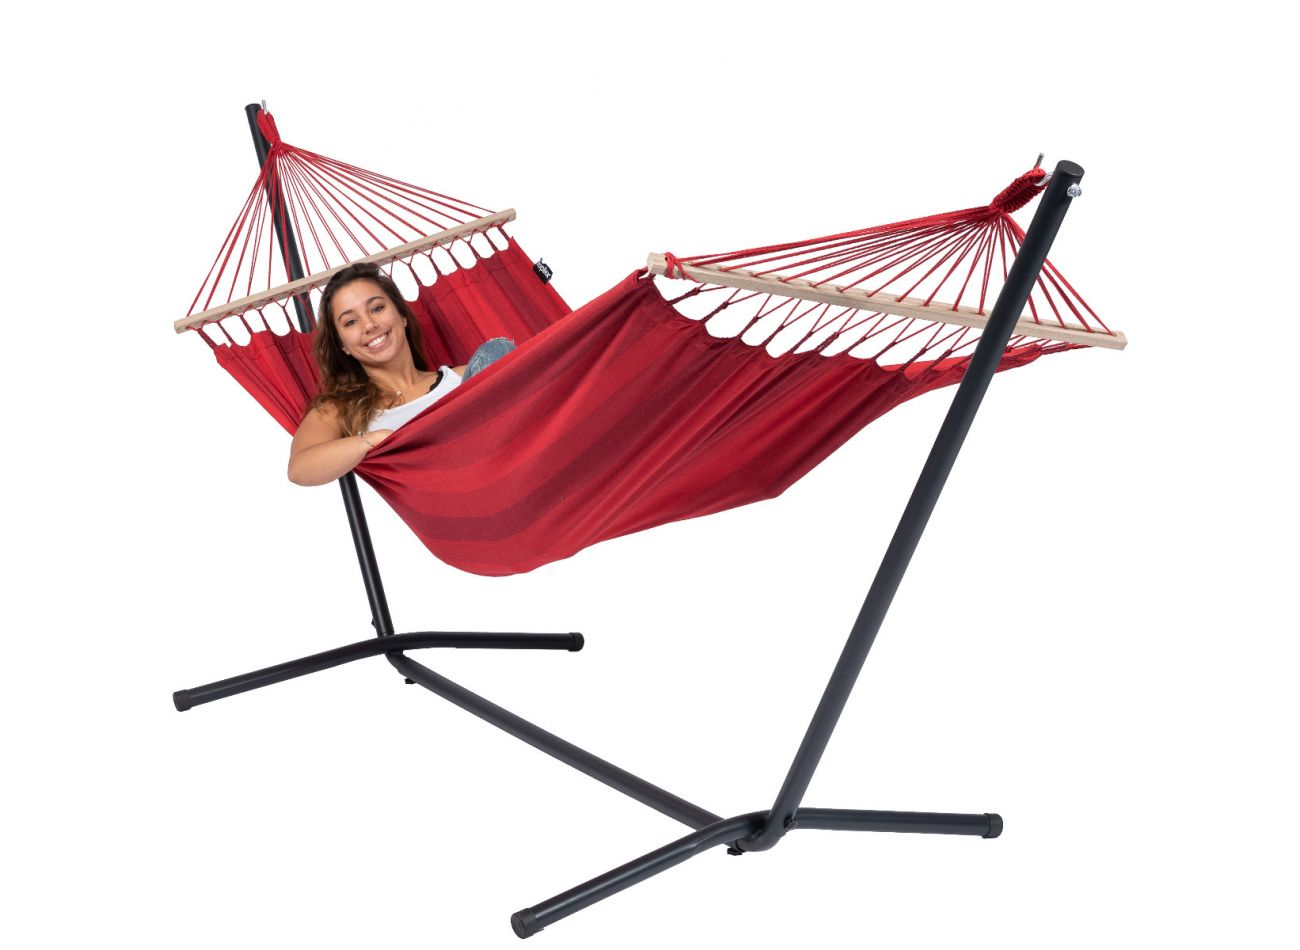 Amaca 1 Persona Relax Red